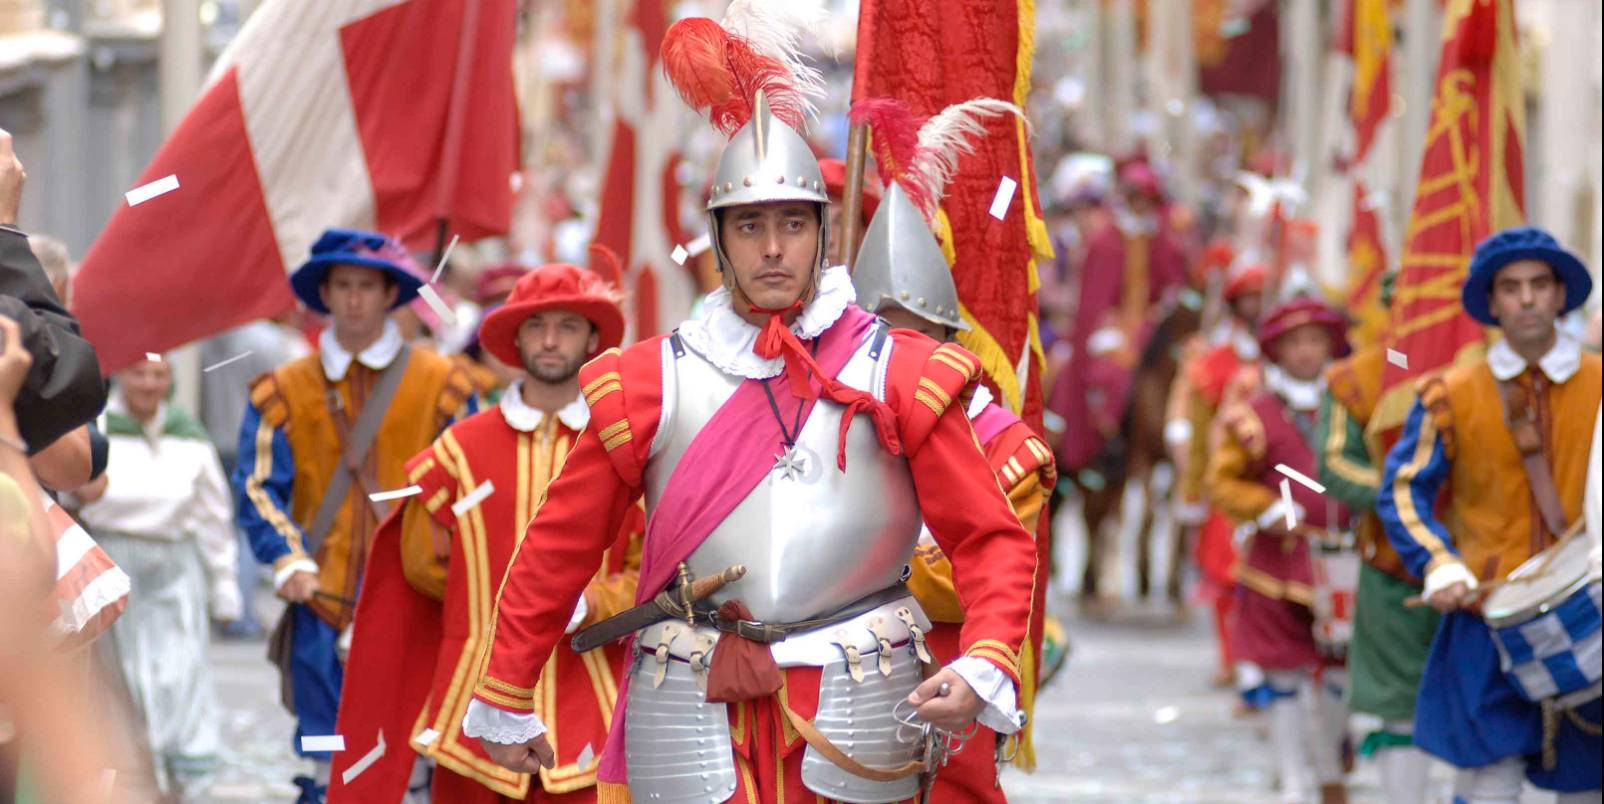 Parade In Guardia, La Valette